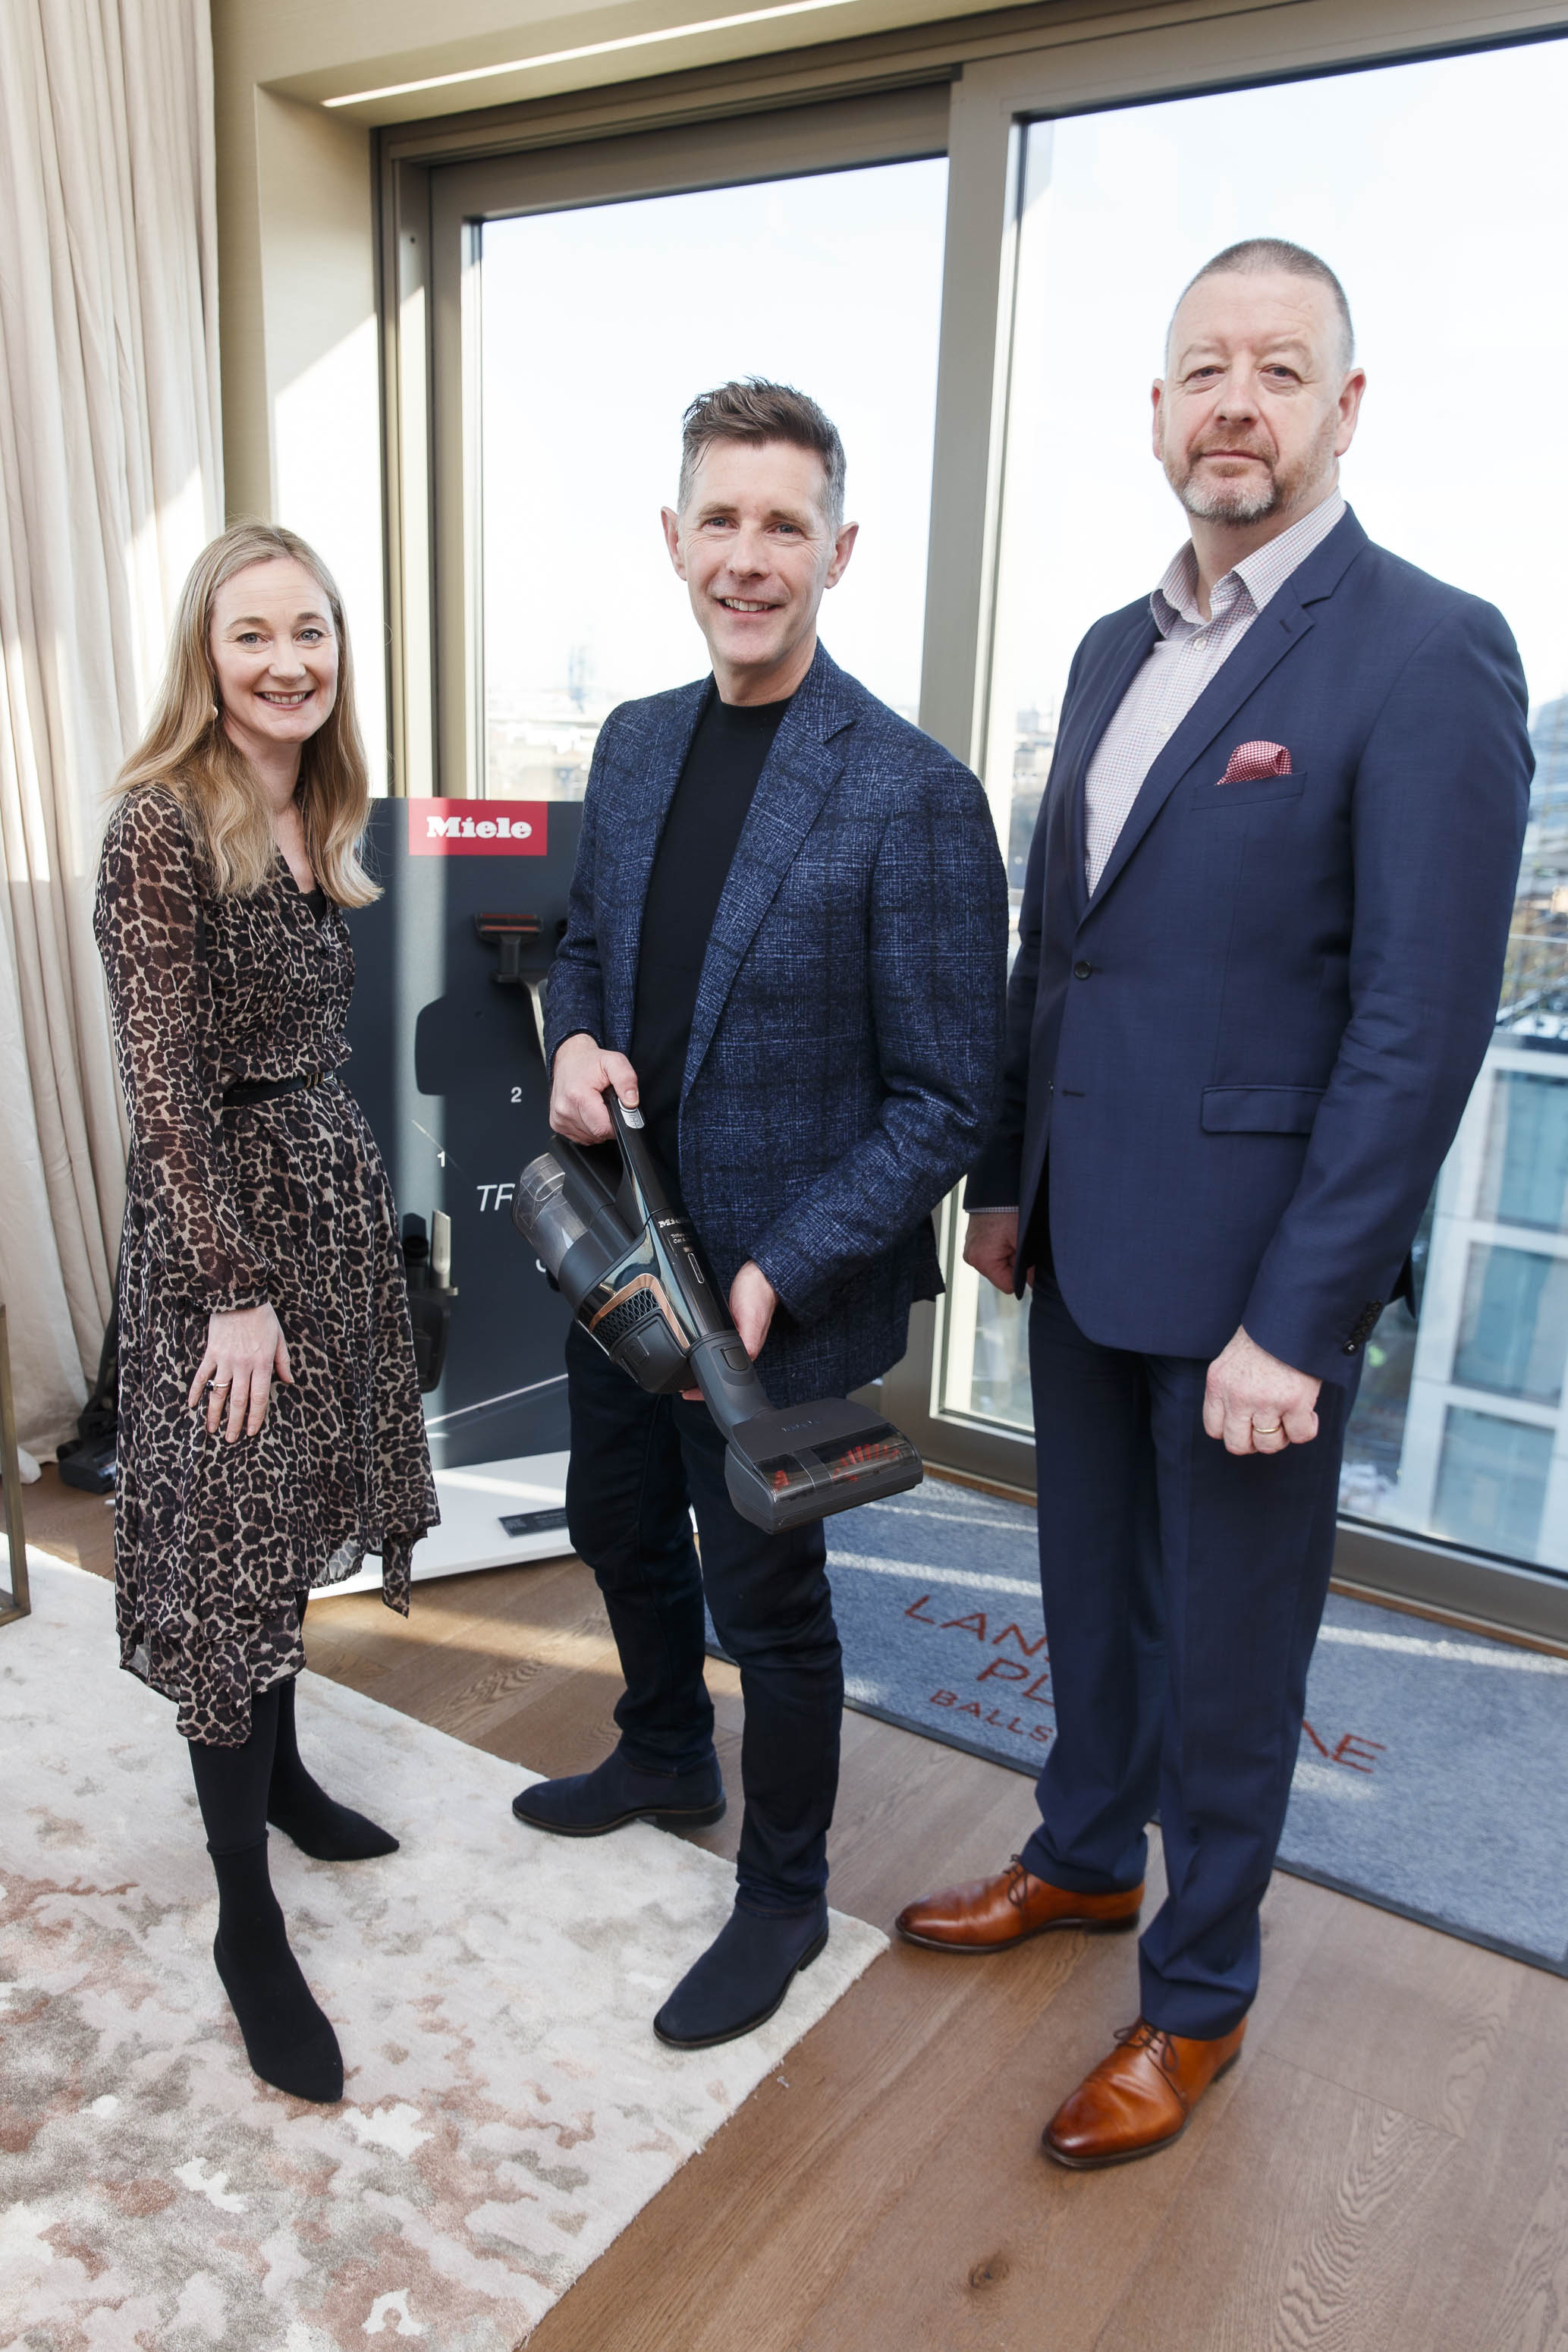 Ciara Elliott, Dermot, Bannon and Miele managing director, Pat McGrath pictured at the launch of Miele Triflex. The world's leading manufacturer of cylinder vacuum cleaners, Miele, unveiled its first ever cordless handstick model at the stunning Landsdowne Place penthouse. Guests experienced the ultimate cordless vacuum cleaner, which is available in all major retailers from €499. Picture Andres Poveda